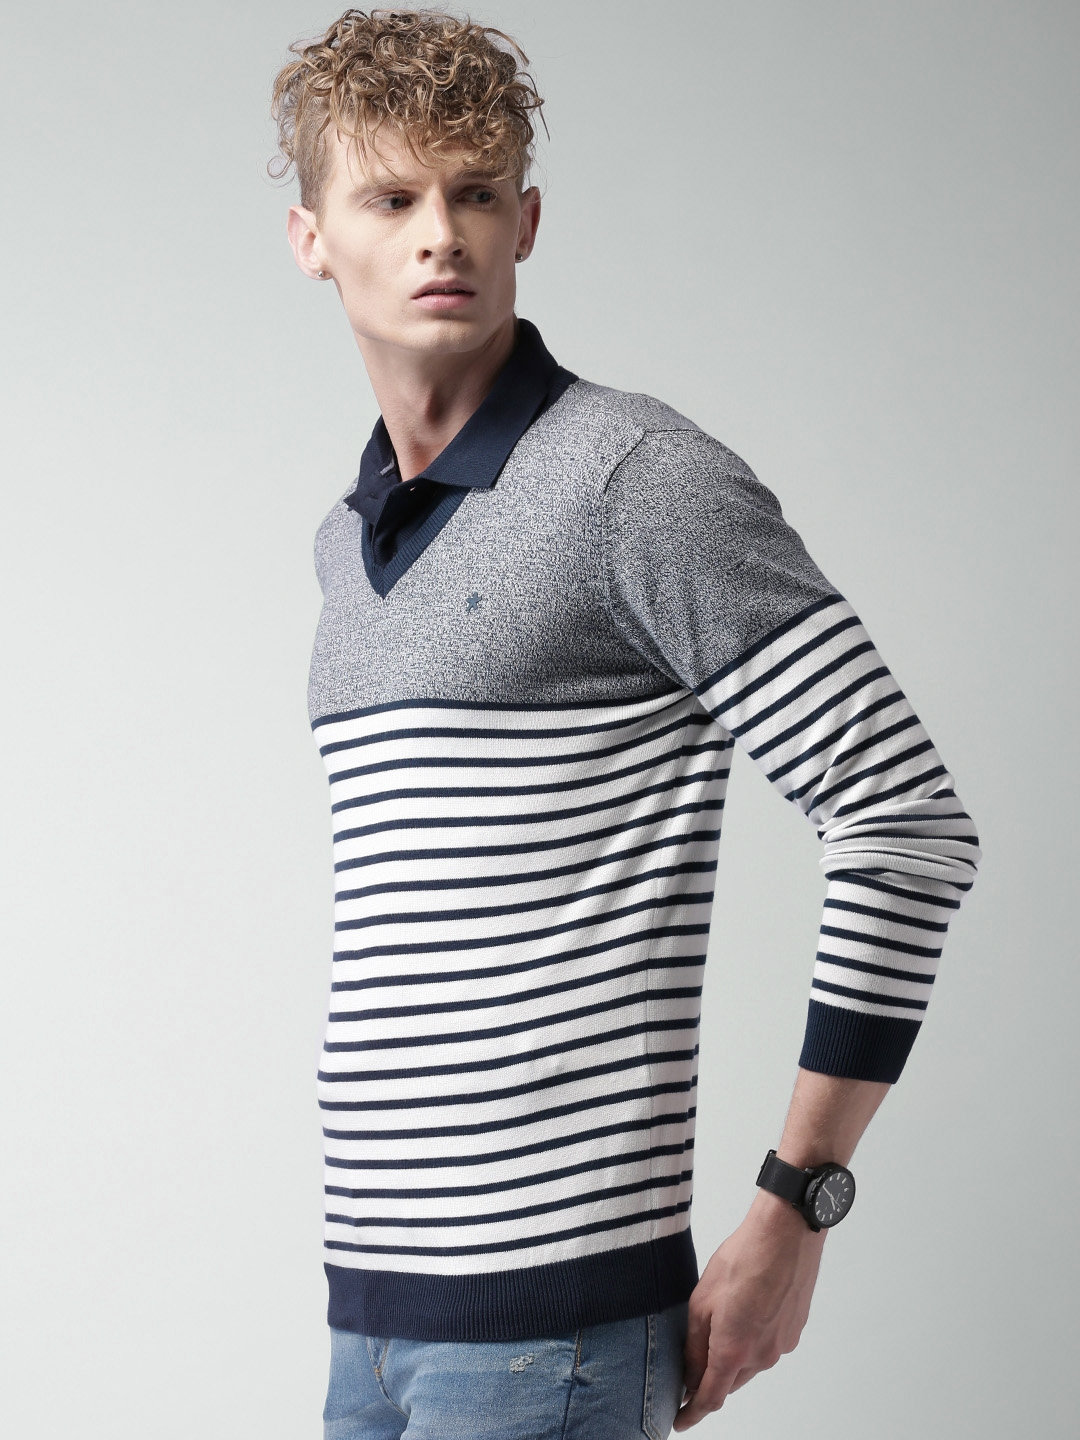 Buy Celio Men Navy Blue White Striped Sweater Sweaters For Men